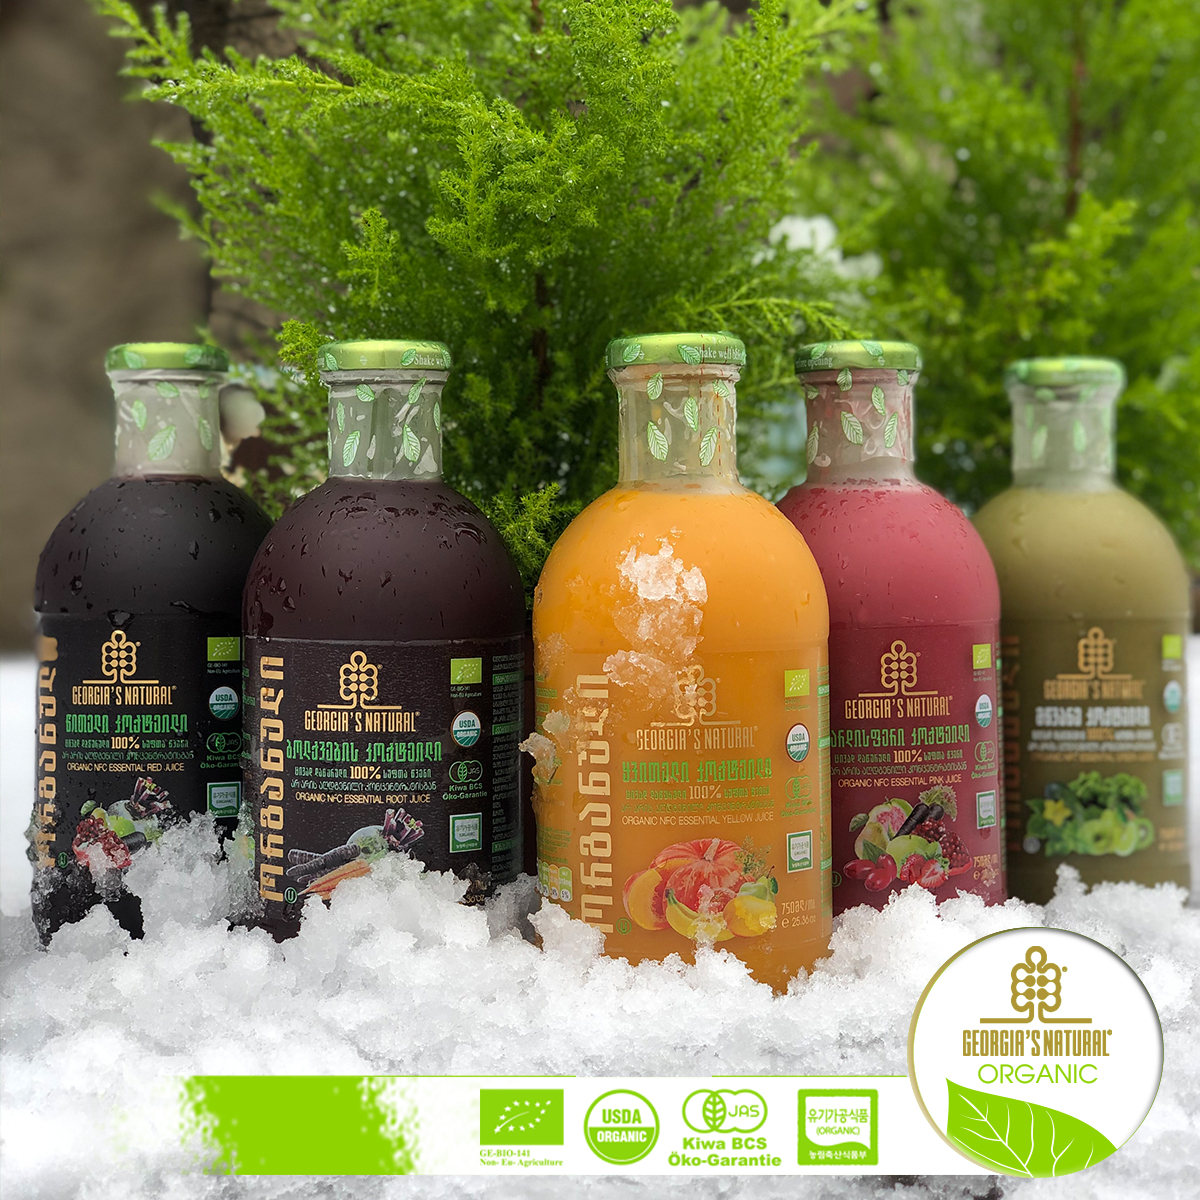 GEORGIA'S NATURAL ESSENTIAL JUICE SIGNATURE LINE / 100% ORGANIC COLD PRESSED JUICE FUSSION